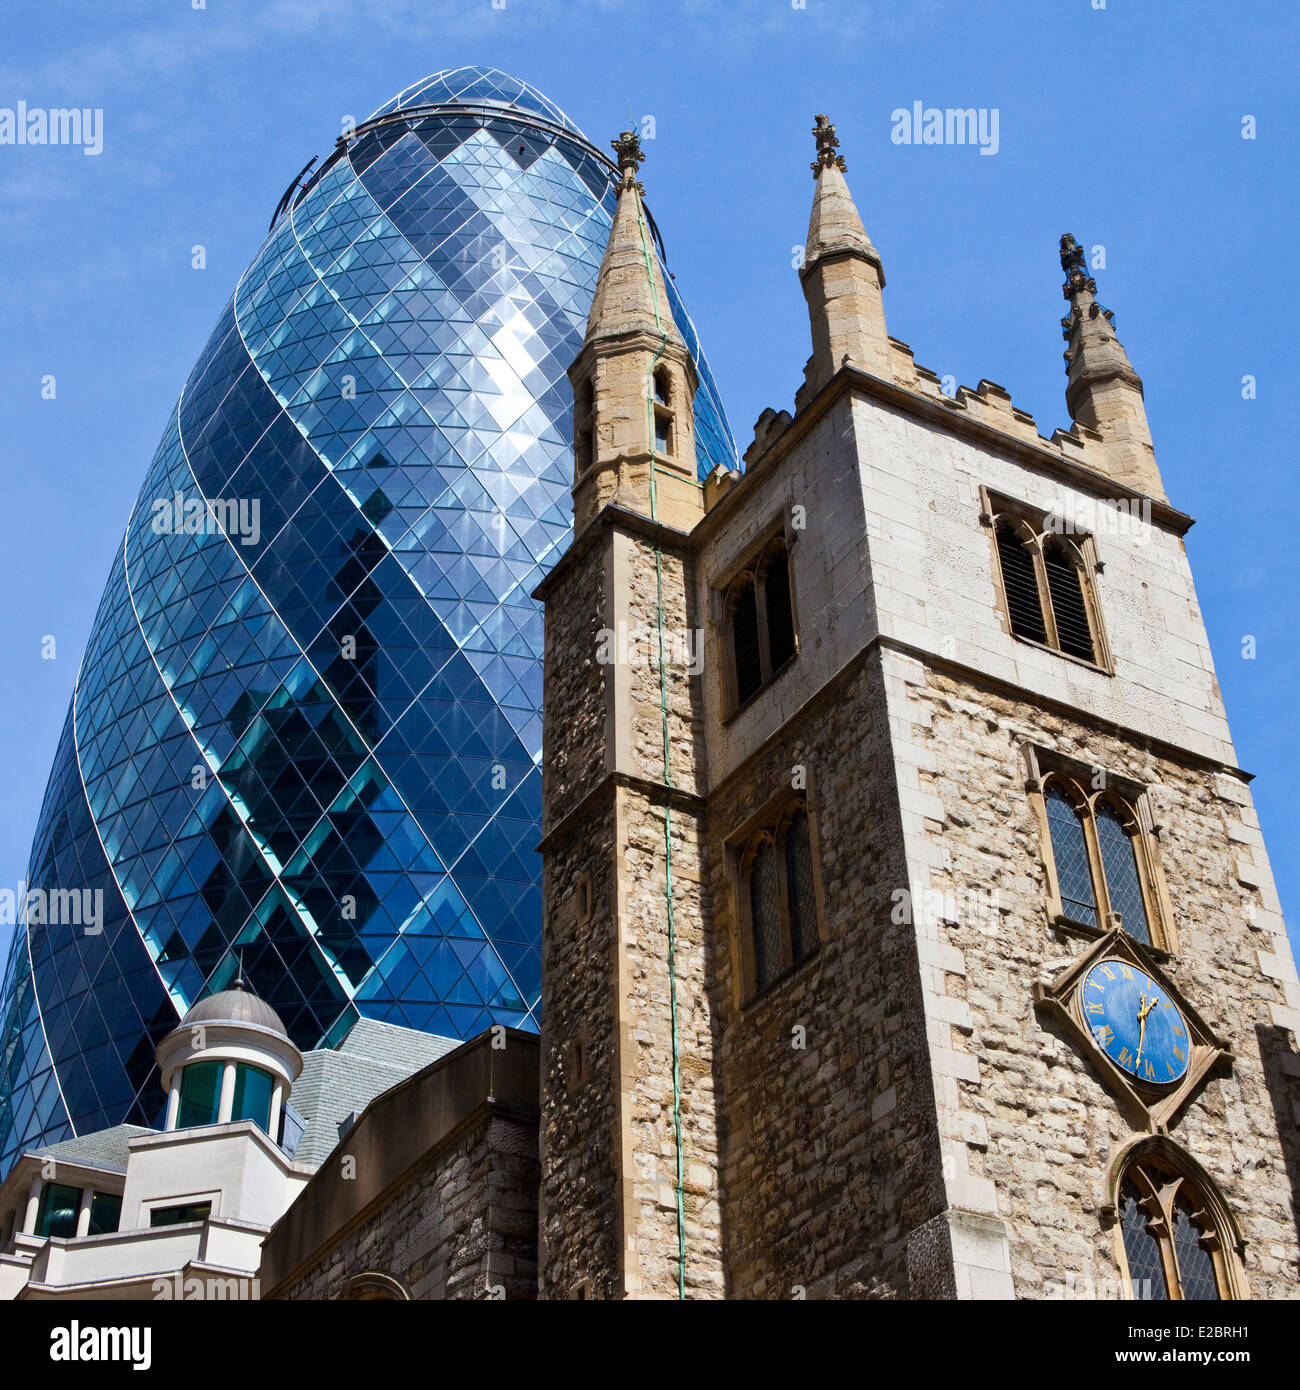 The historic St. Andrew Undershaft Church with 30 St. Mary Axe towering above it in the City of London. Stock Photo